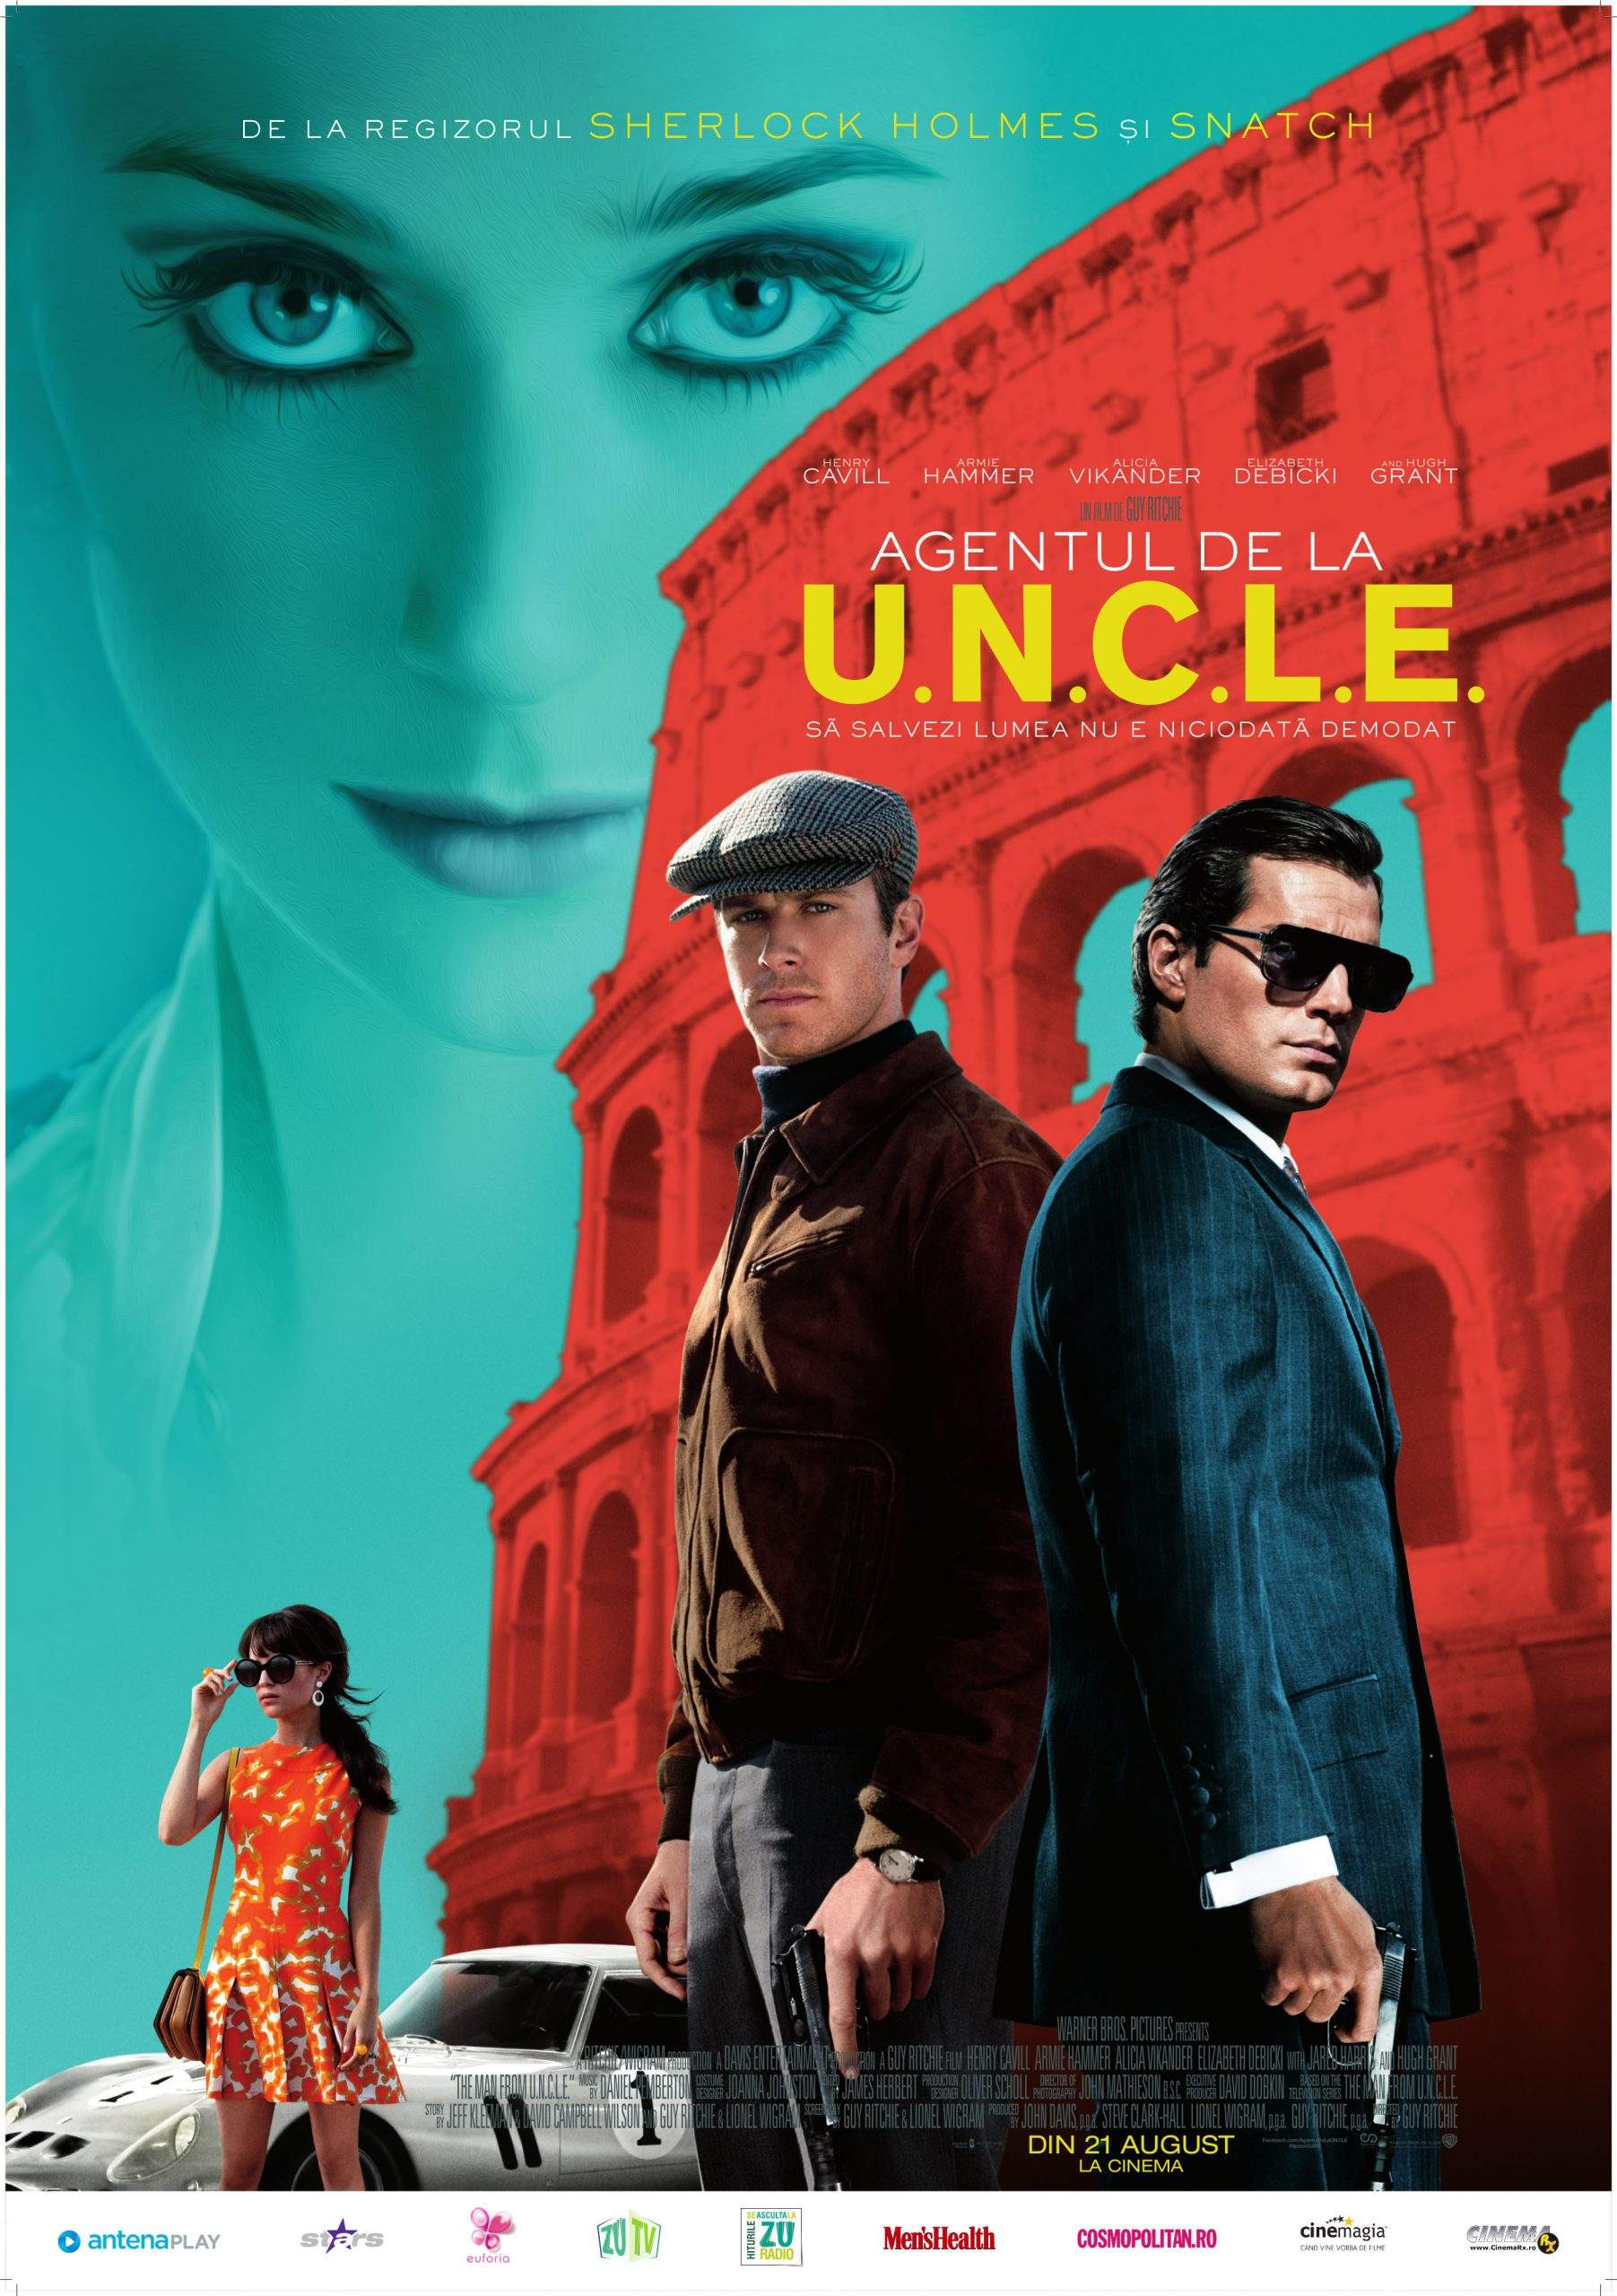 The Man from U.N.C.L.E. (2015) – C.H.I.C.